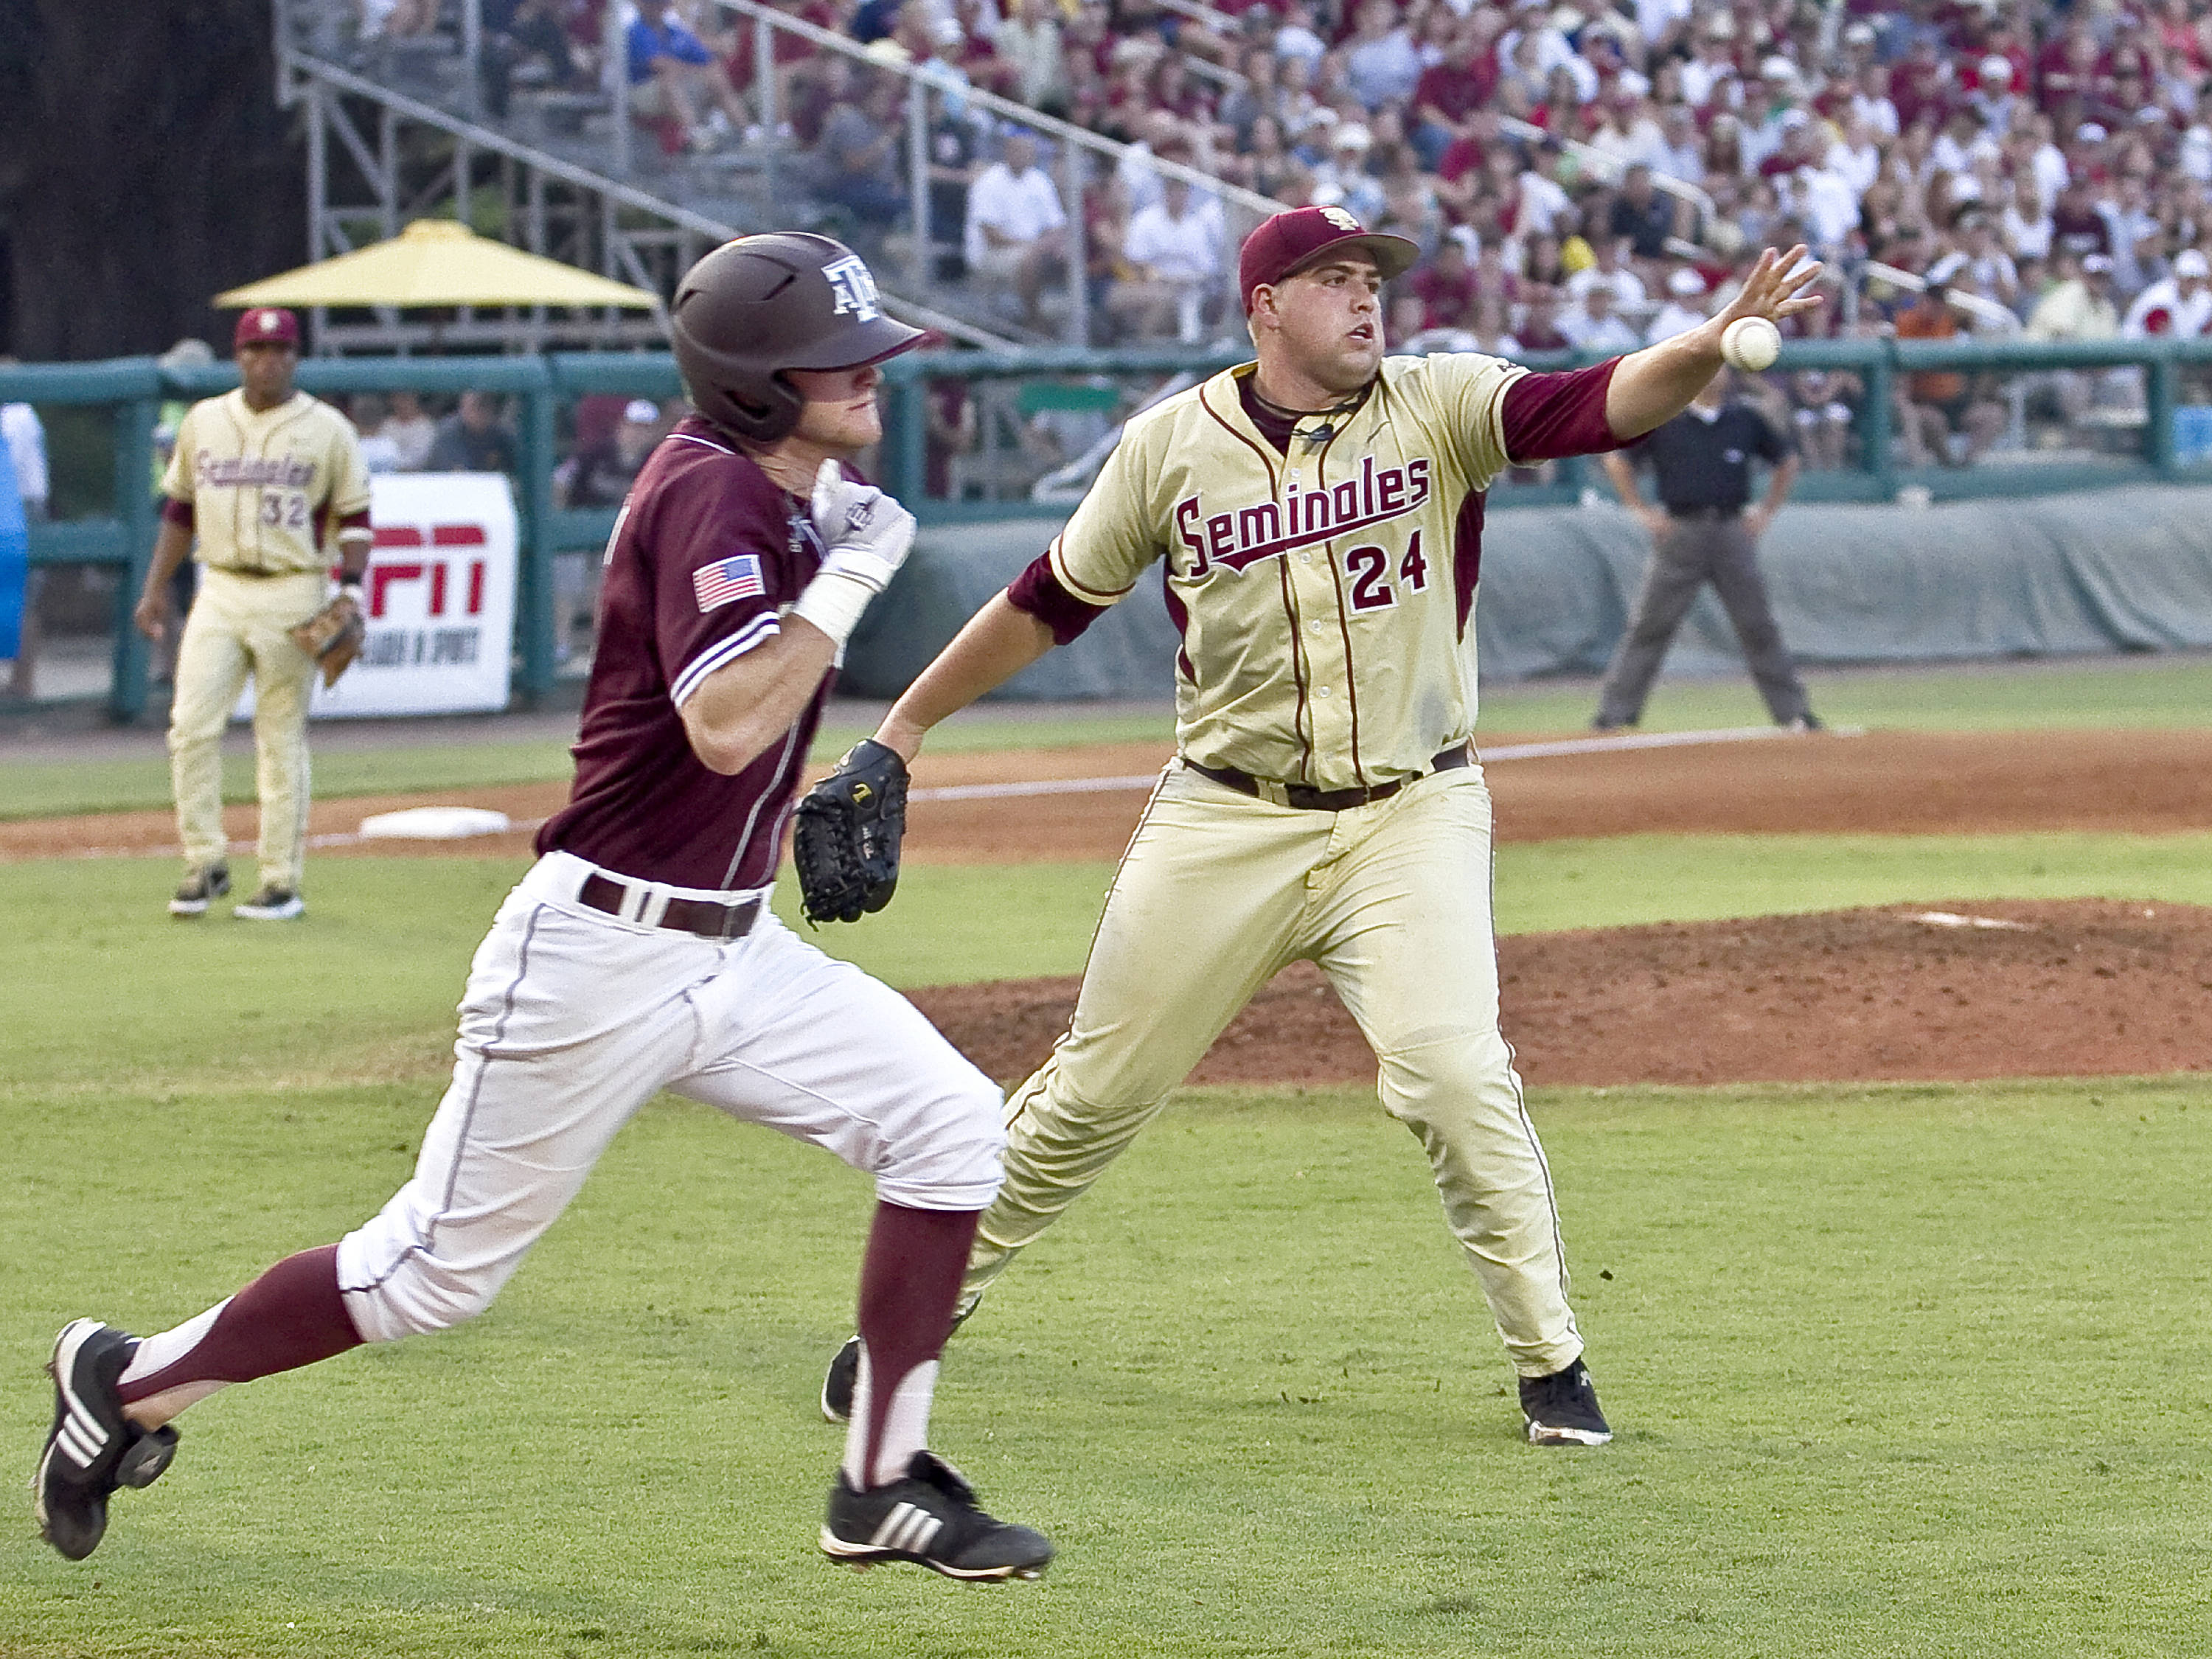 Pitcher Brian Busch (24) with an odd release of the ball for a put-out.